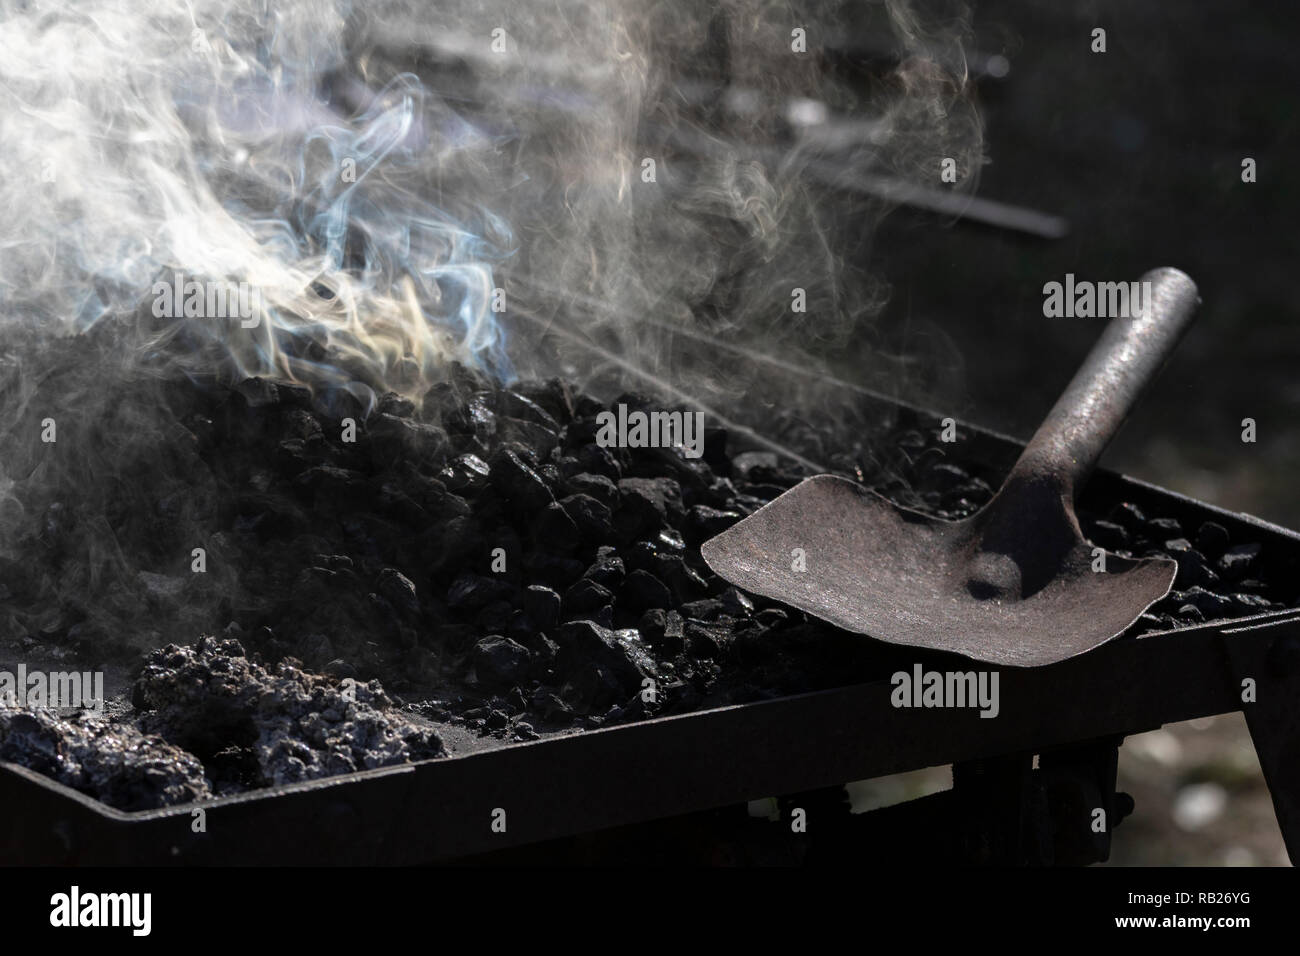 A blacksmith's workplace - Stock Image